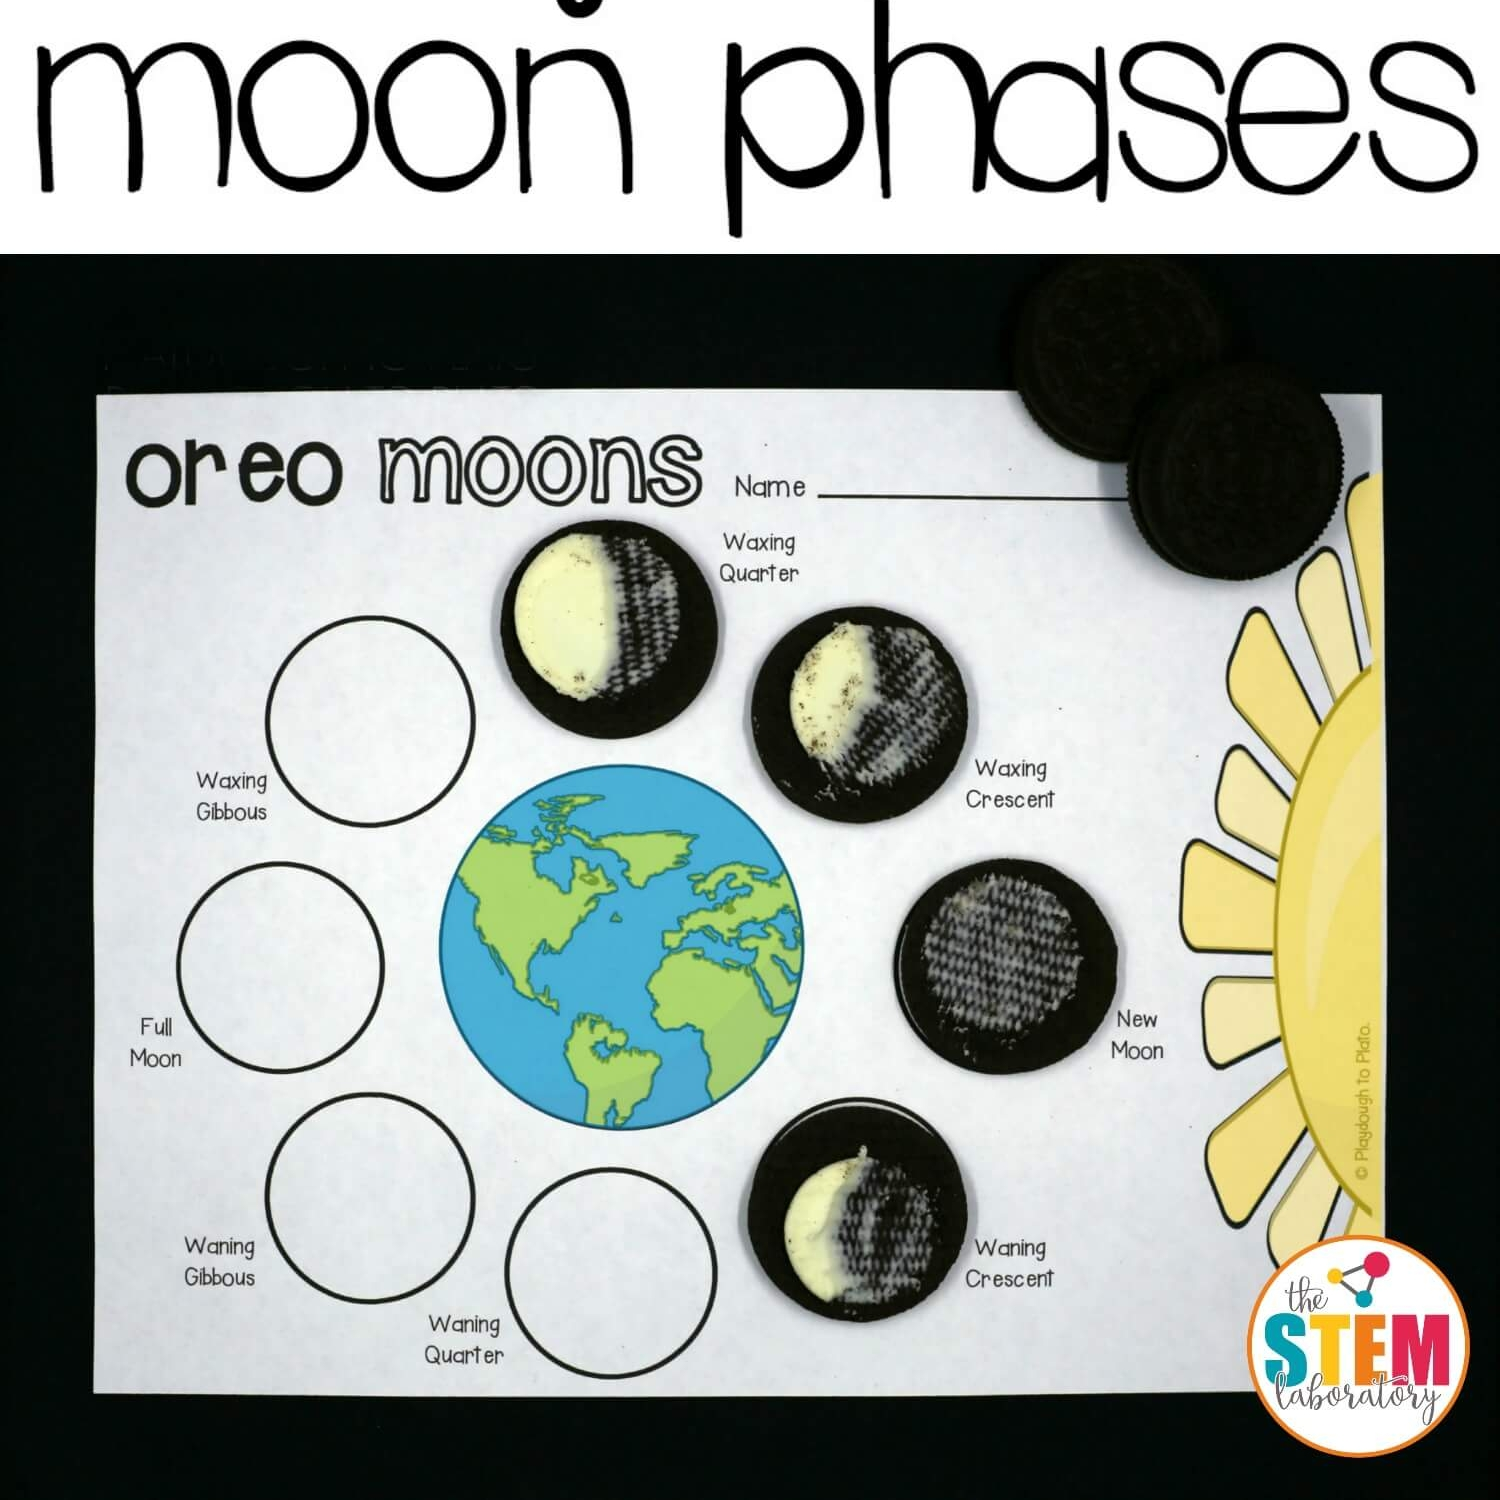 I-love-these-moon-phase-activities-for-kids-Make-Oreo-moon-phases-and-use-a-flashlight-to-explain-why-the-moon-changes.-Great-hands-on-science-for-kids..jpg